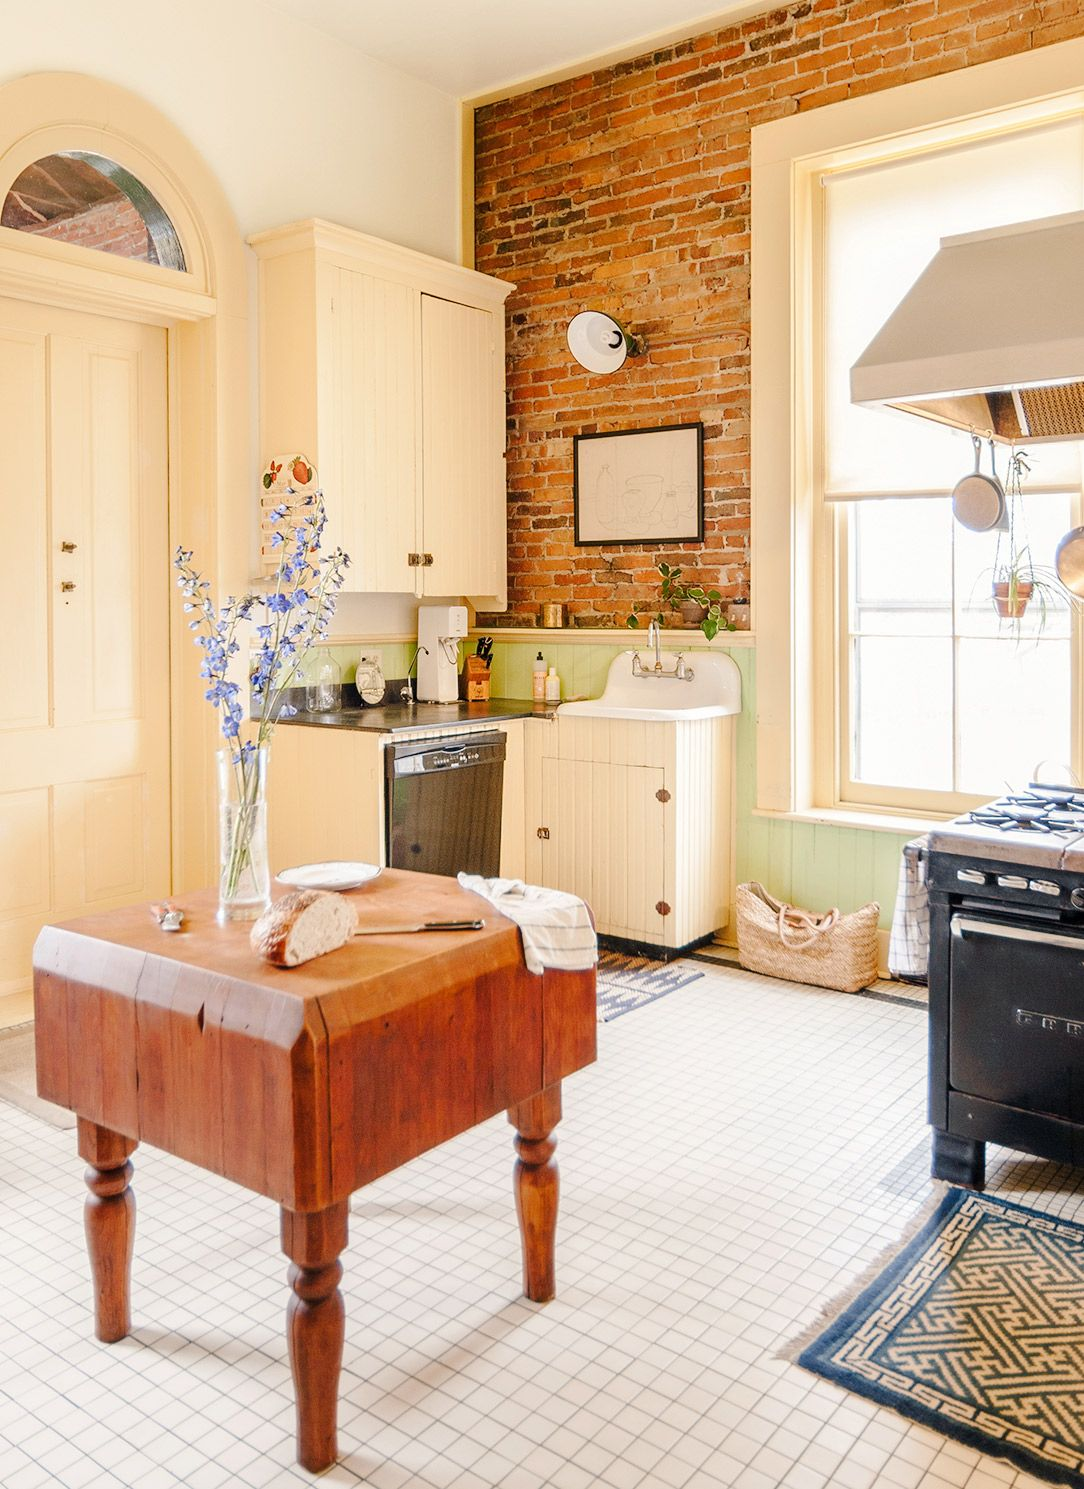 Tour a Stately and Stylish Historic Michigan Home | Exposed brick ...